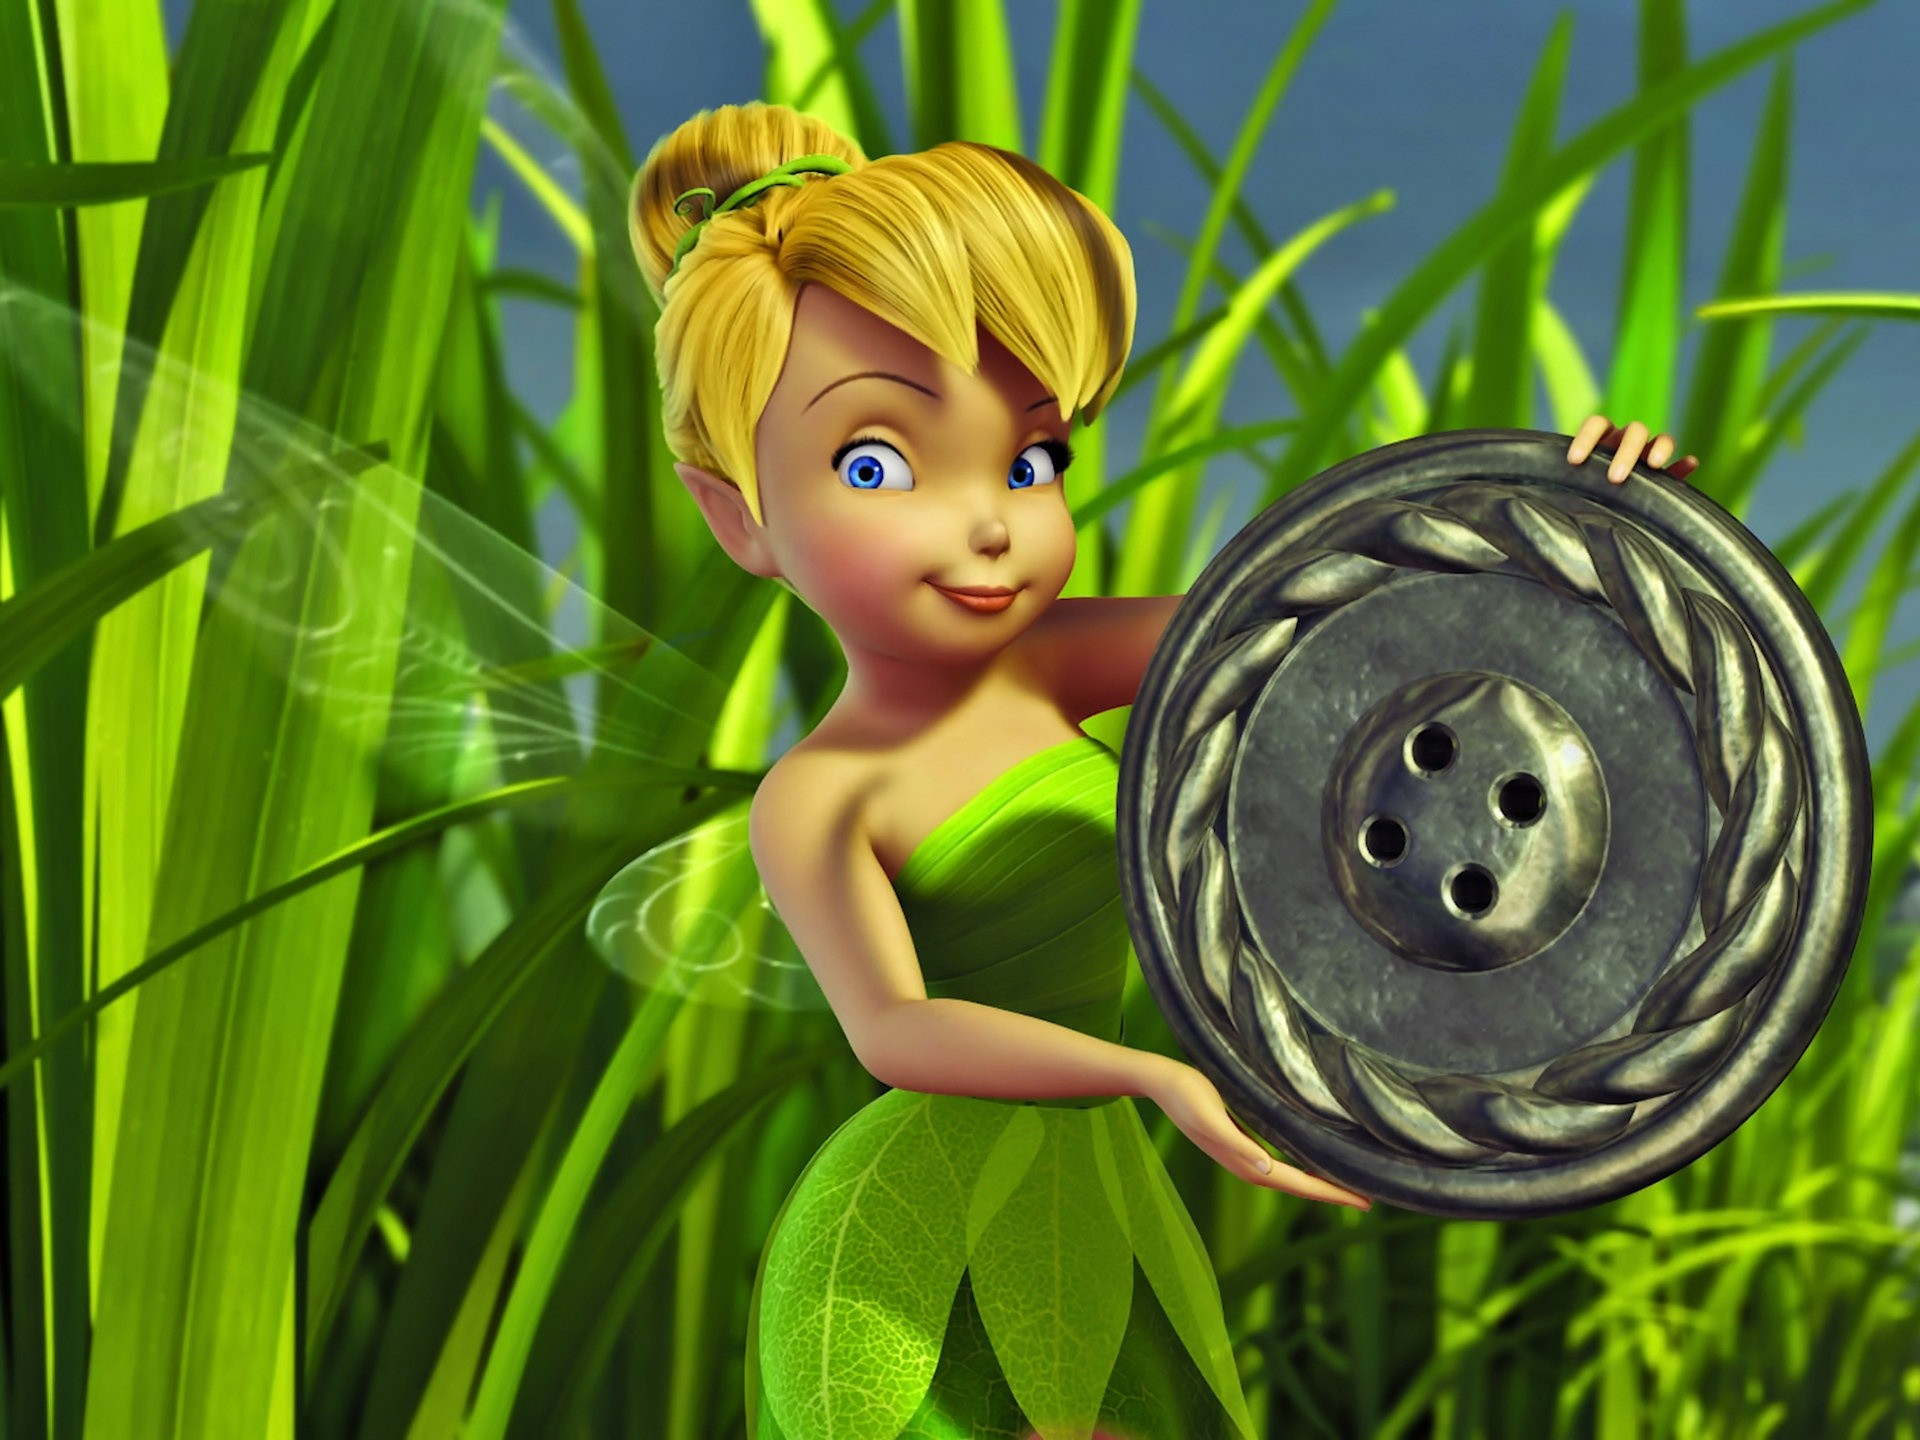 Res: 1920x1440, TinkerBell wallpaper hd free download